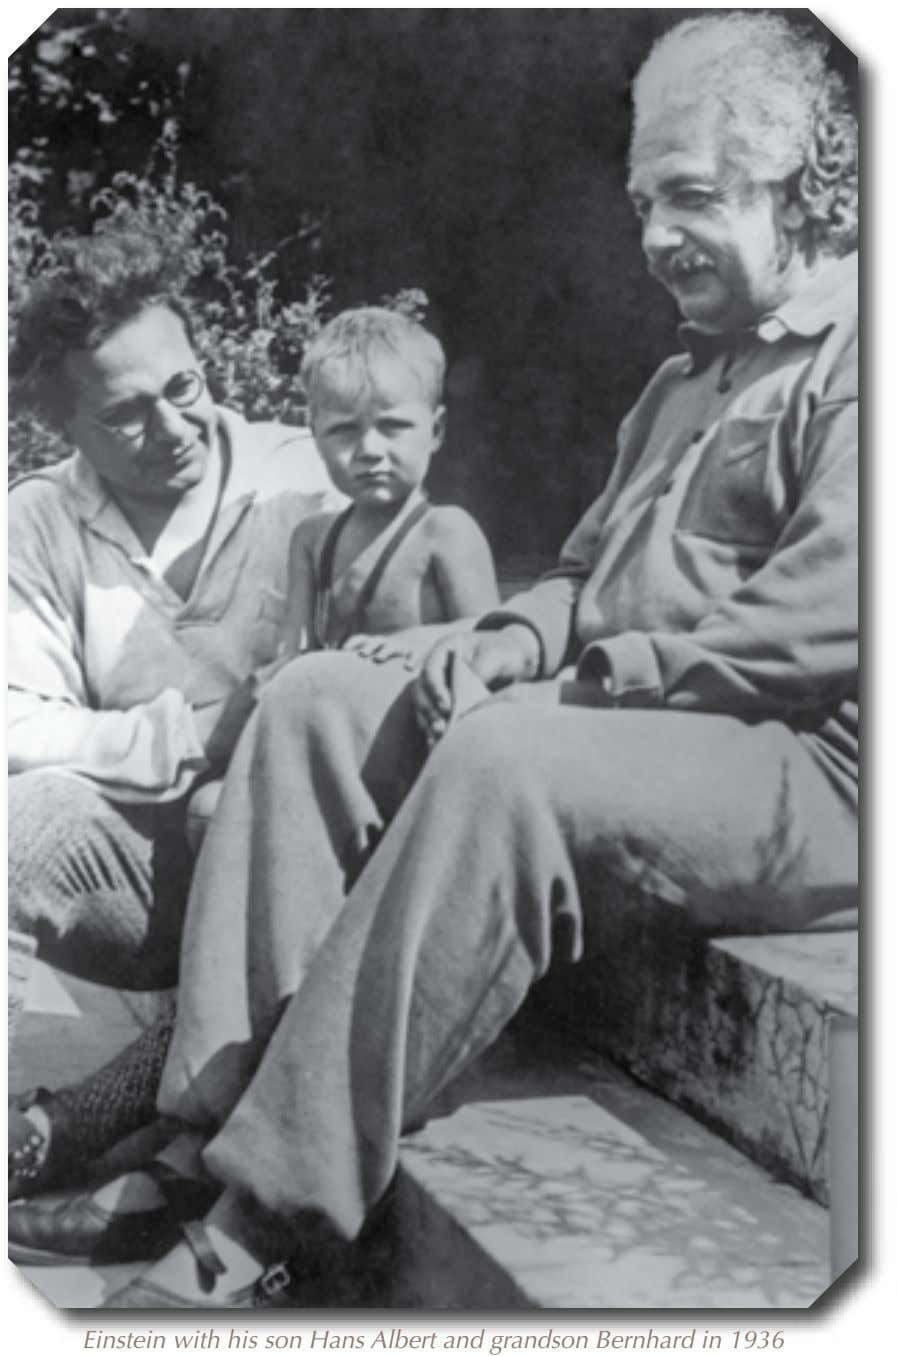 Einstein with his son Hans Albert and grandson Bernhard in 1936